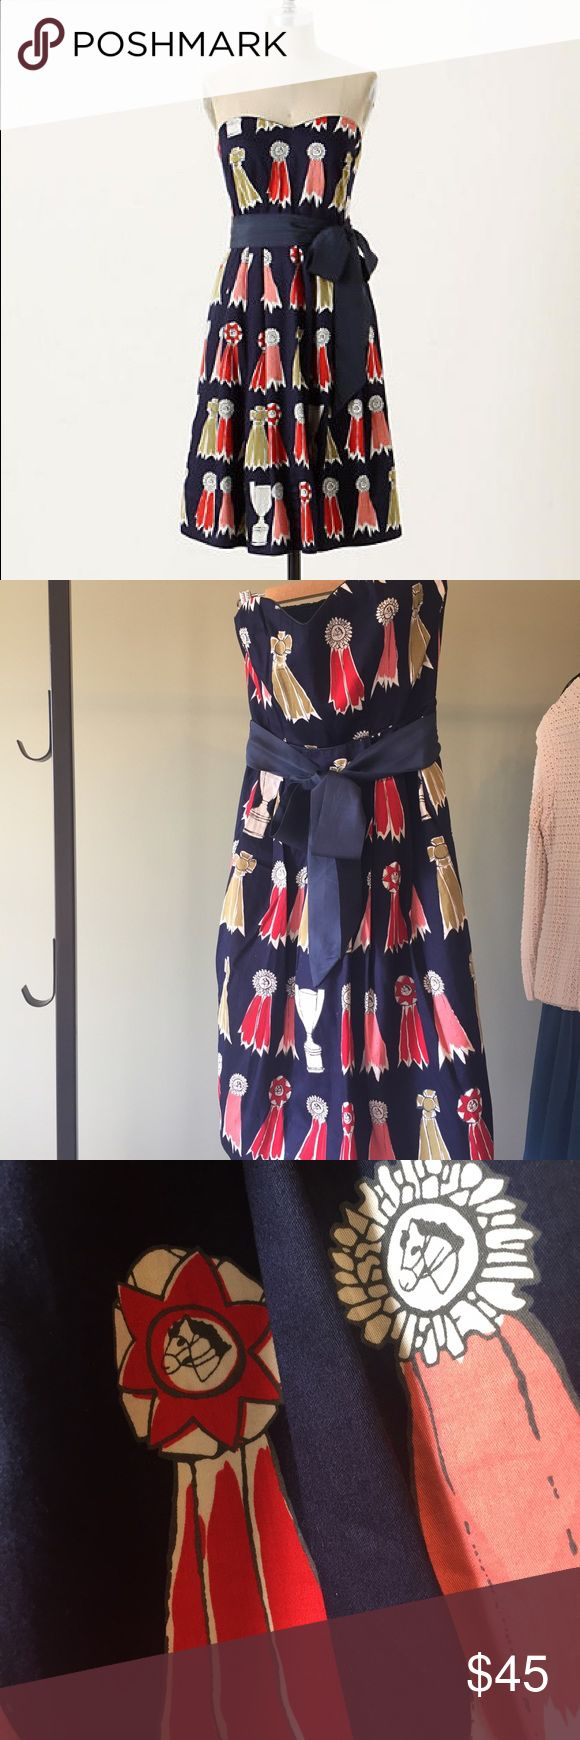 Anthropologie Highest Accolades Dress We Love Vera from Anyhropologie. This Dress is called Highest Accolades. Stunning! Worn once for a Kentucky Derby party. Now it's your chance! Size 4, but could fit a small 6 as well. Anthropologie Dresses Strapless